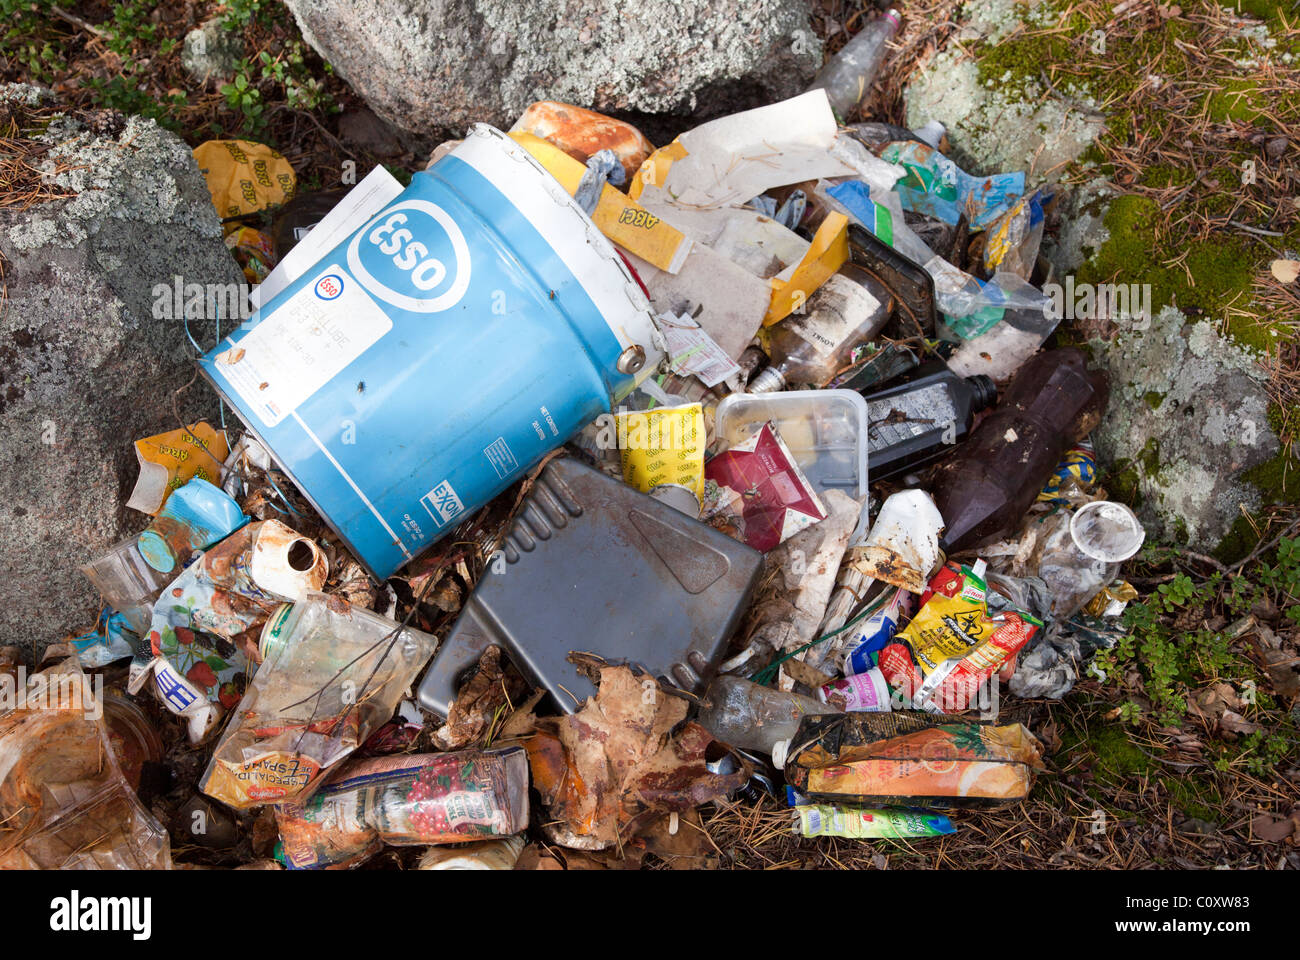 Garbage and trashes dumped to the nature - Stock Image